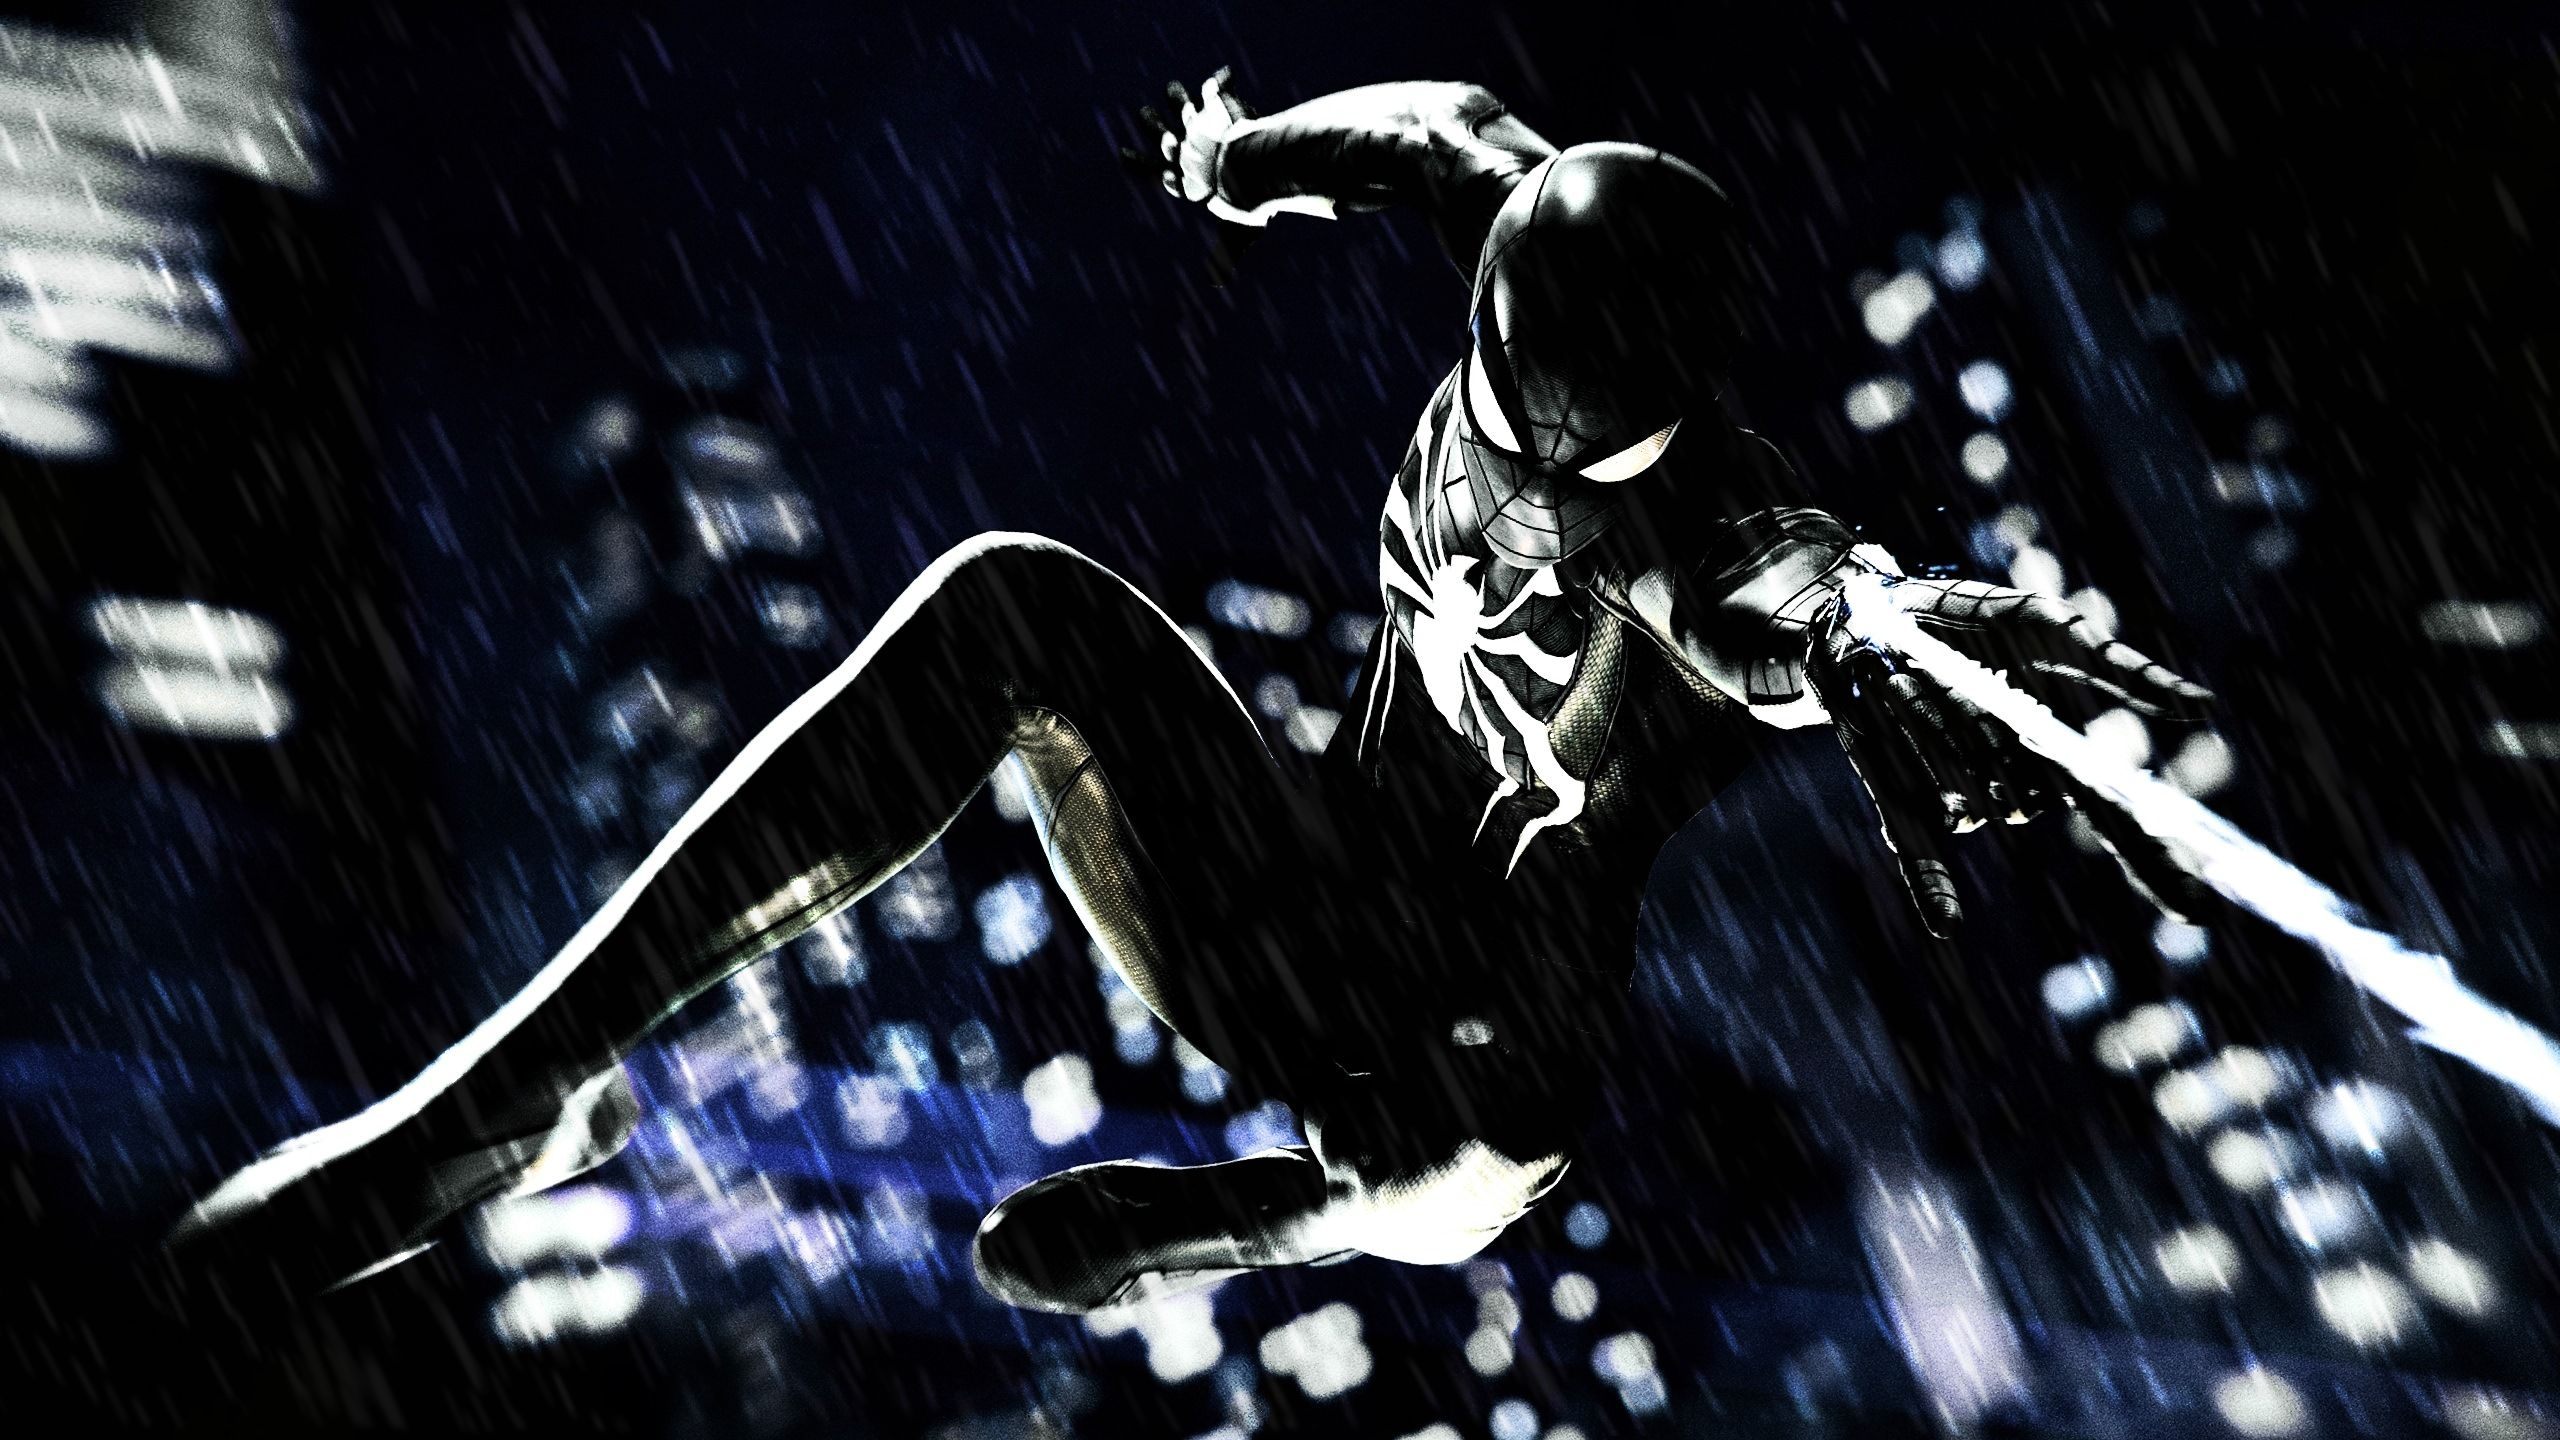 spider man ps4 black suit wallpaper 2560 1440 spider man